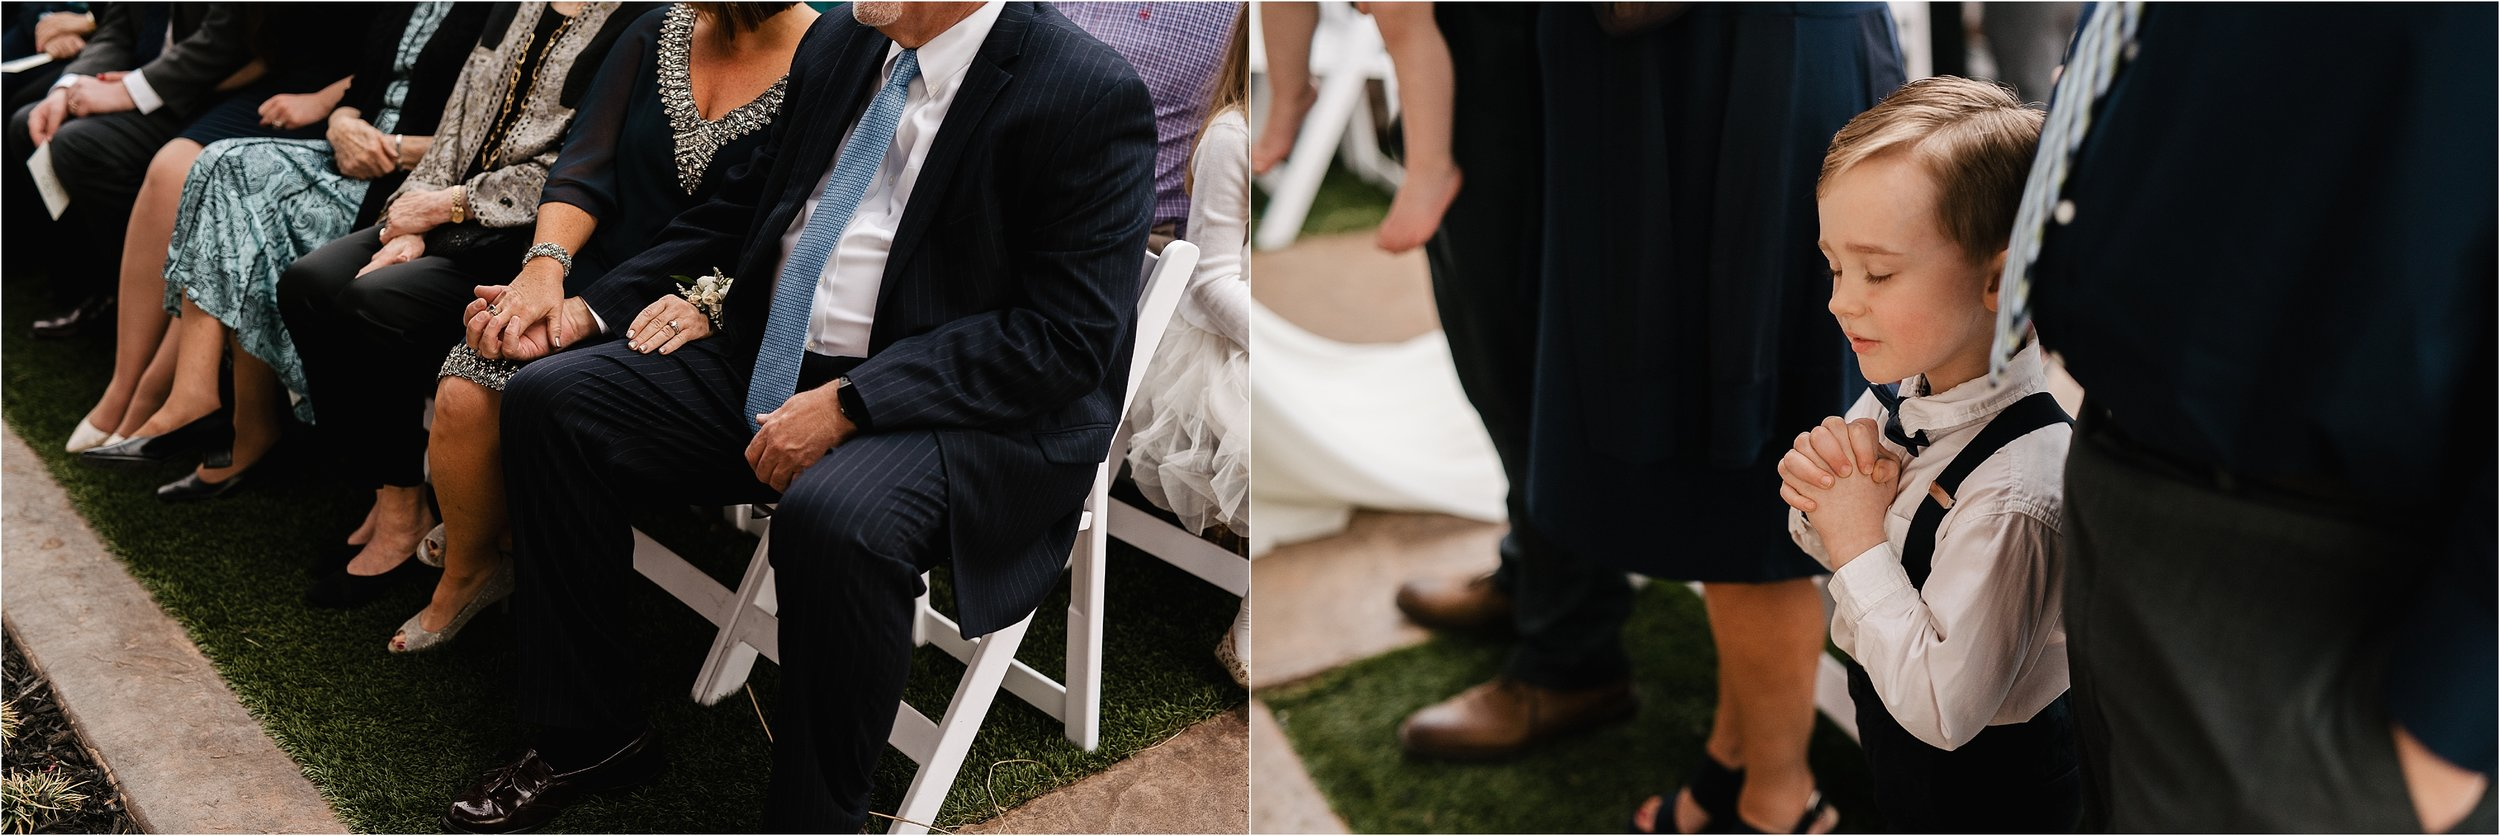 the springs norman oklahoma city wedding photographer outdoor ceremony reception wedding venue overcast family friends ring bearer